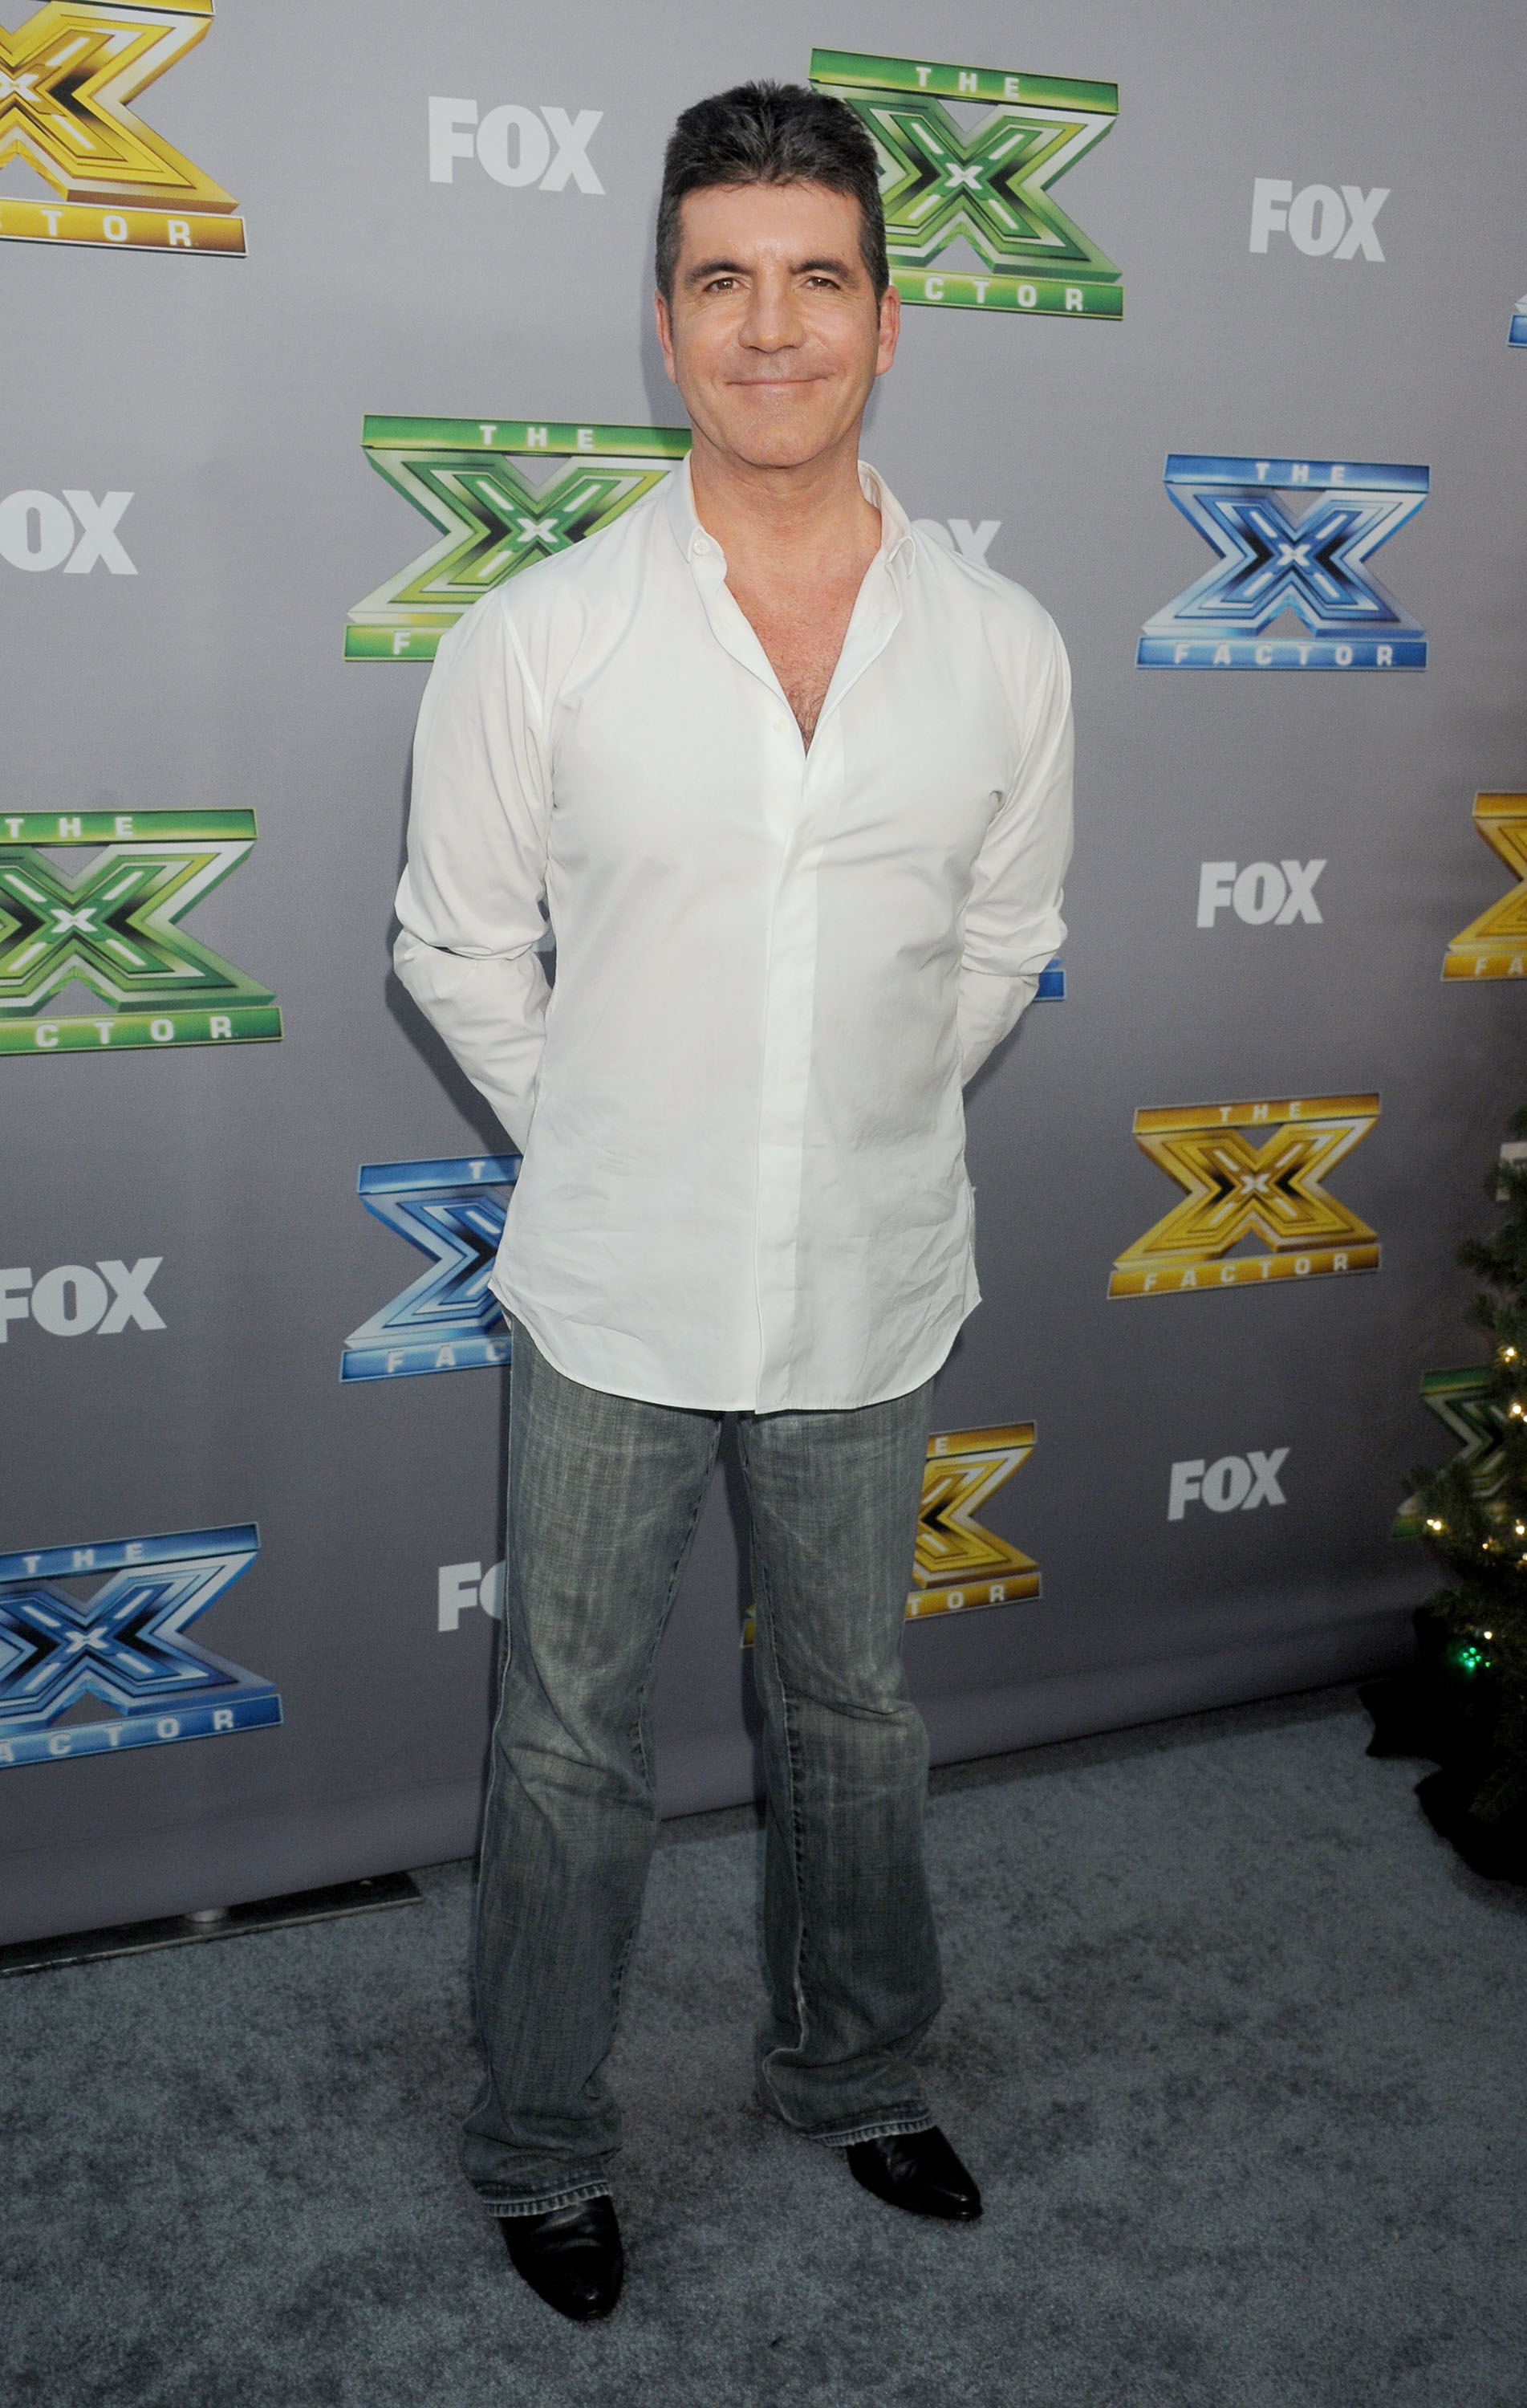 Simon Cowell steps up to help young cancer patient